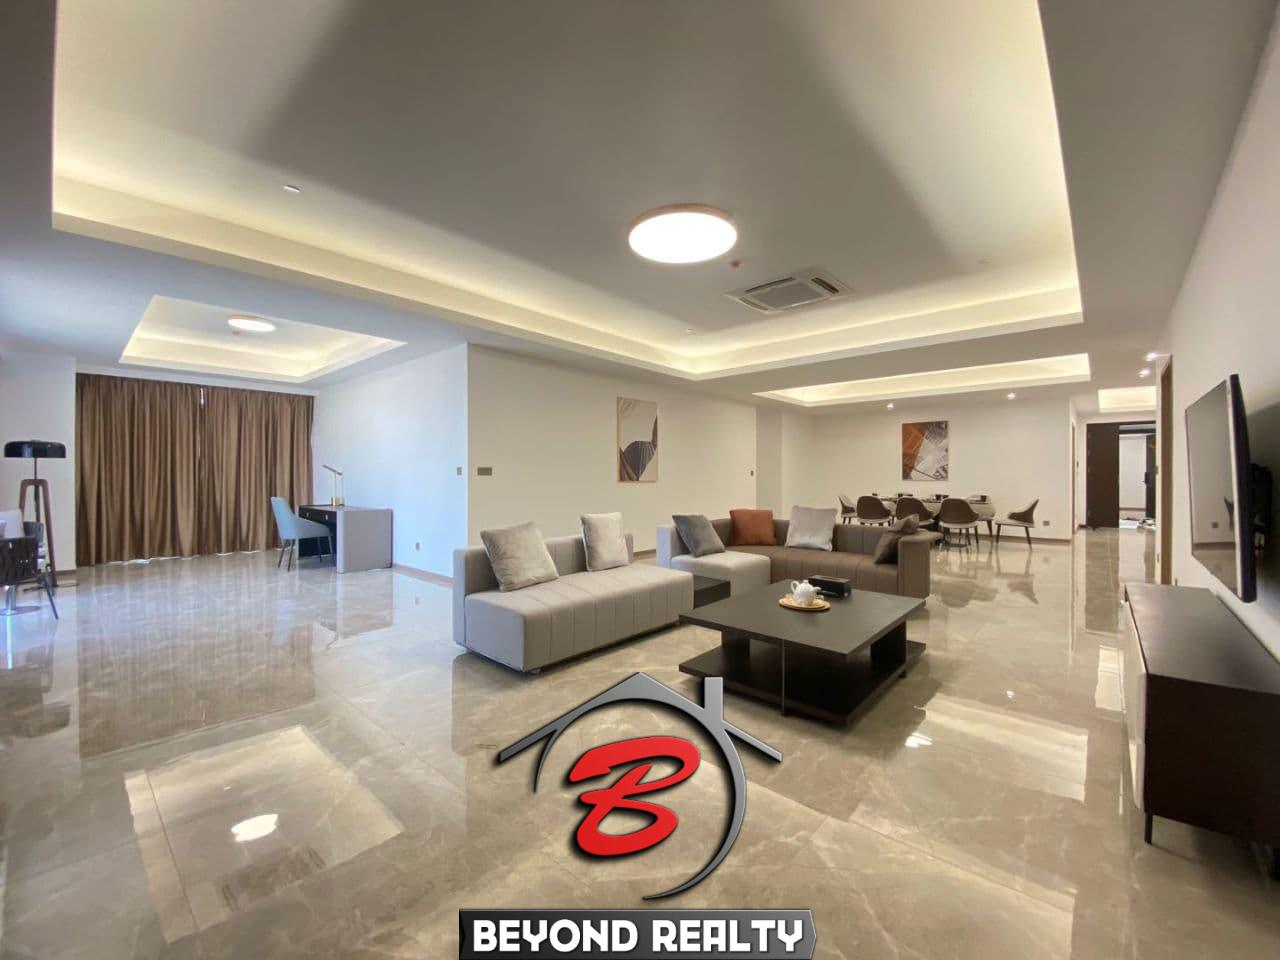 the living room 3-bedroom luxury spacious serviced flat for rent in Veal Vong 7 Makara Phnom Penh Cambodia